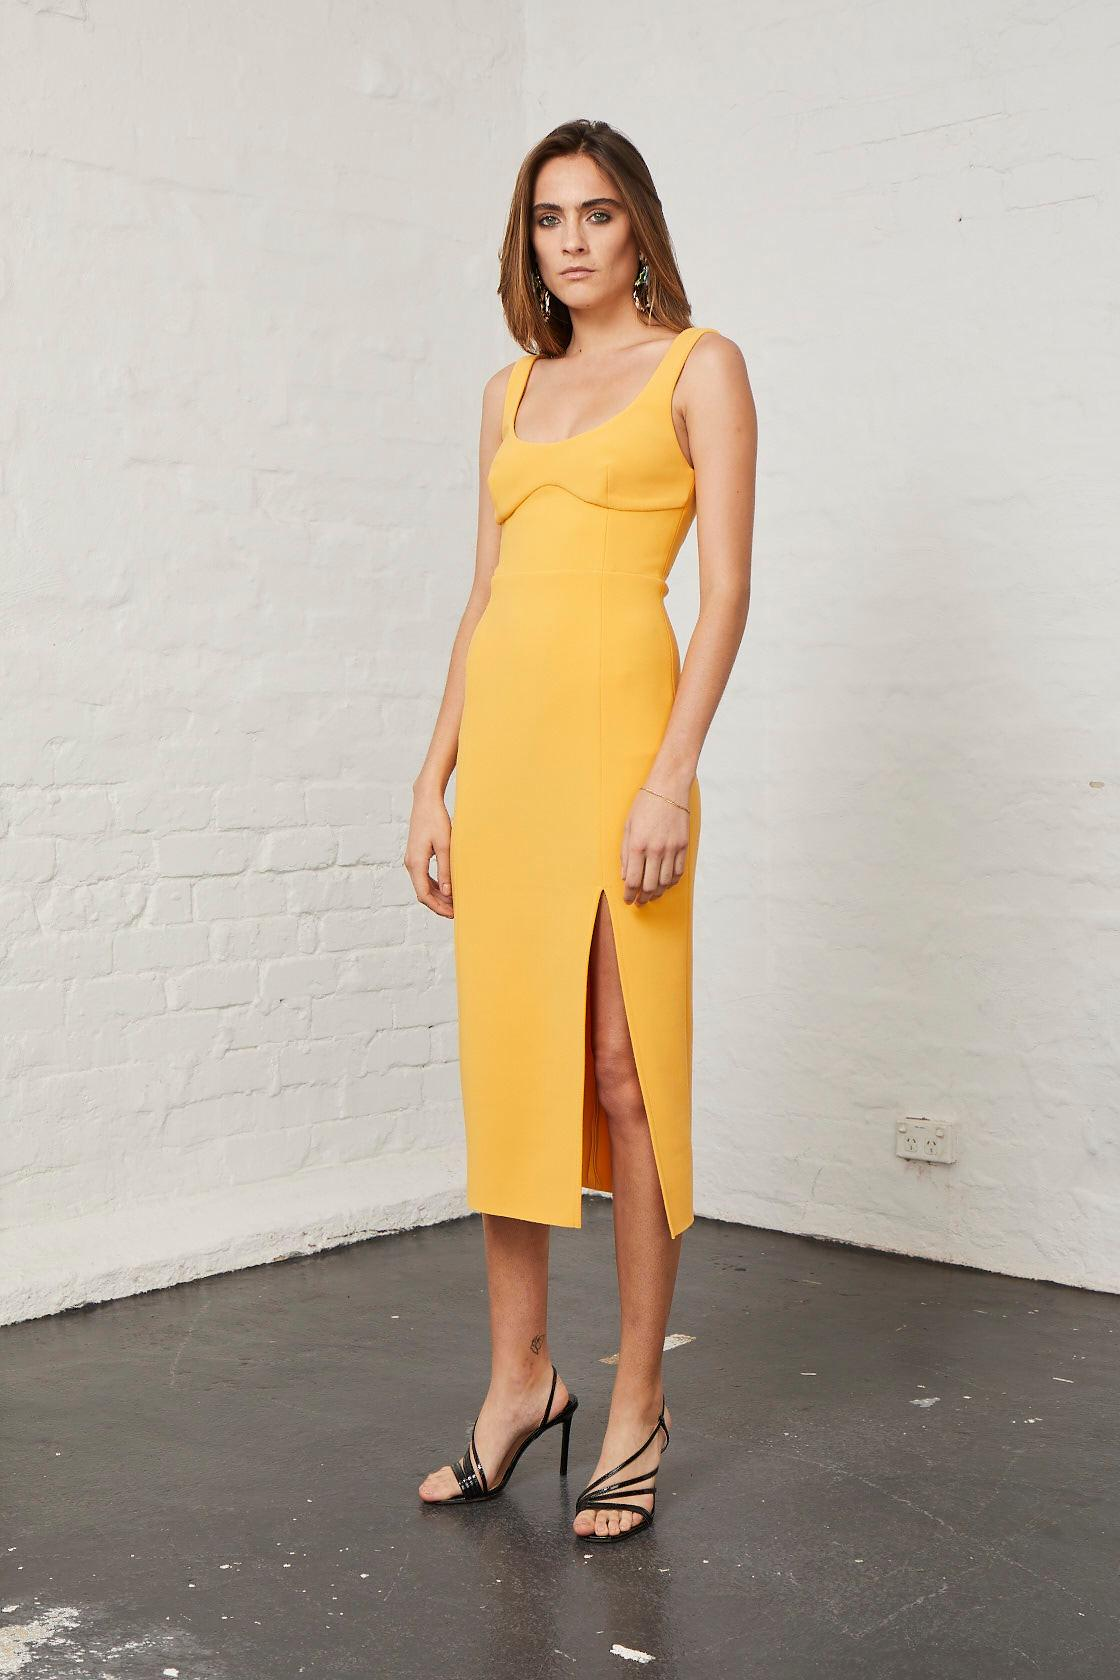 Bec Amp Bridge Elle Midi Dress In Mango Orange Sz 6 The